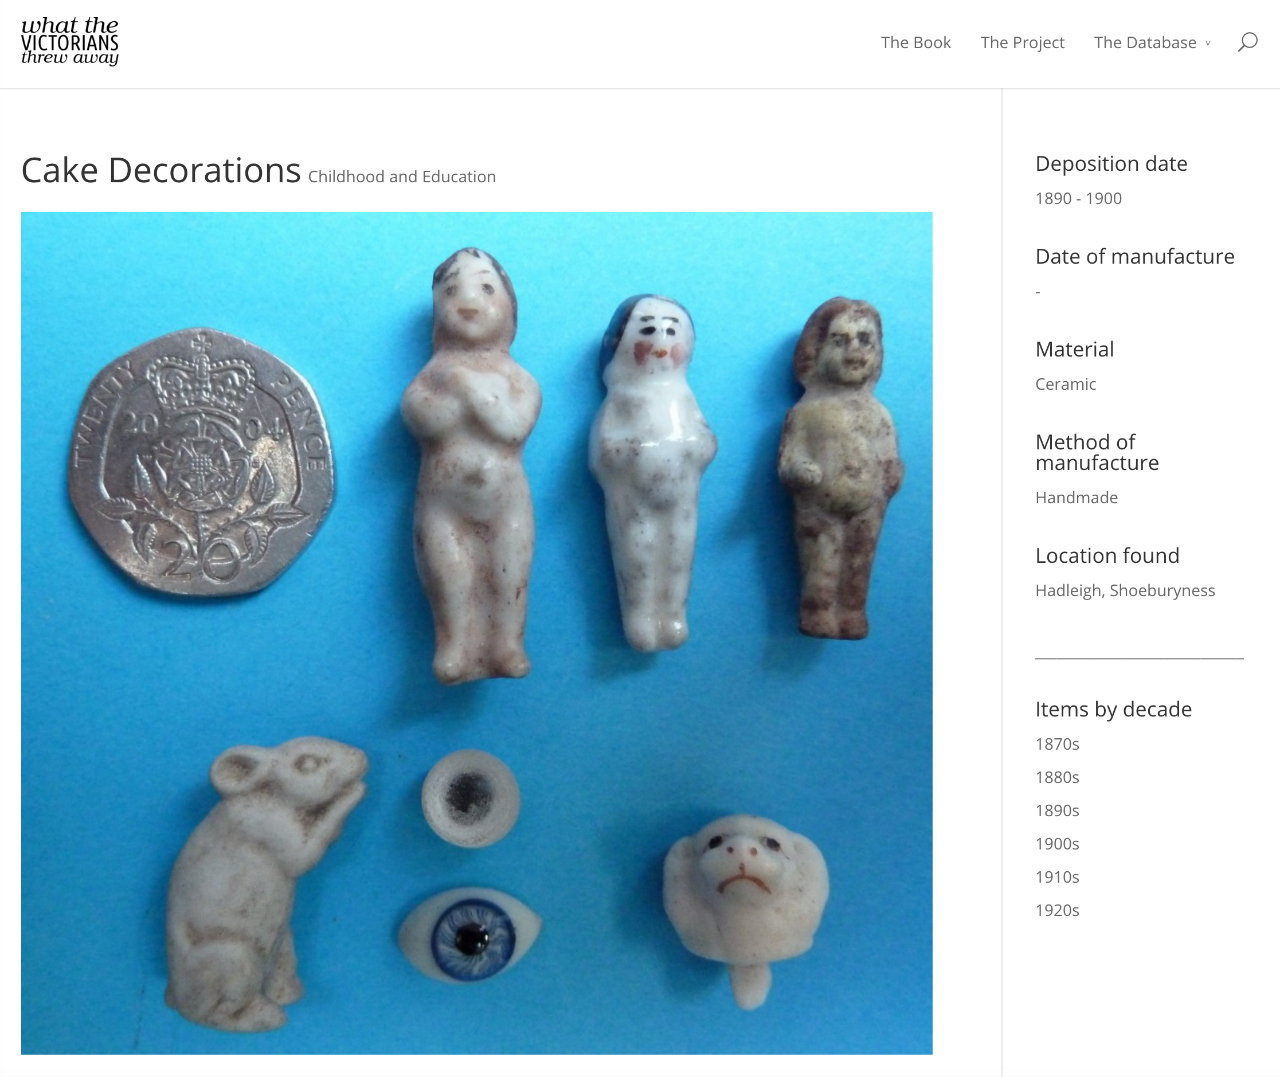 """Victorian cake decoration thrown away between 1890 and 1900, including """"Frozen Charlottes."""" (The site notes that the """"two dolls' eyes obviously were not decorations."""") (screenshot by the author for Hyperallergic)"""